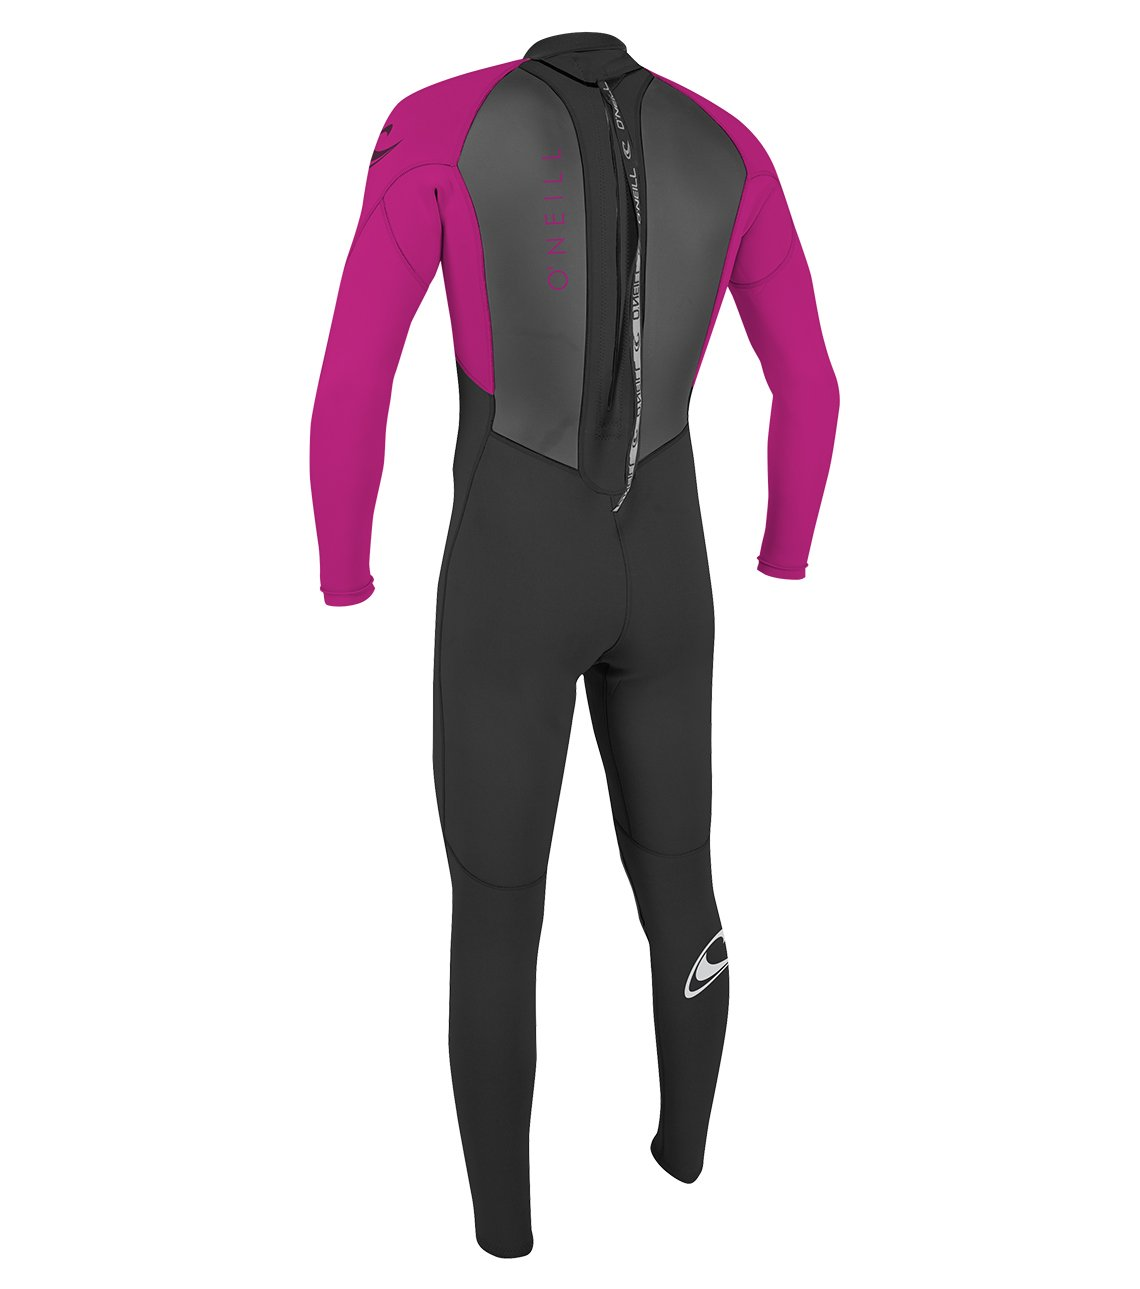 O'Neill Youth Reactor-2 3/2mm Back Zip Full Wetsuit, Black/Berry, 4 by O'Neill Wetsuits (Image #2)